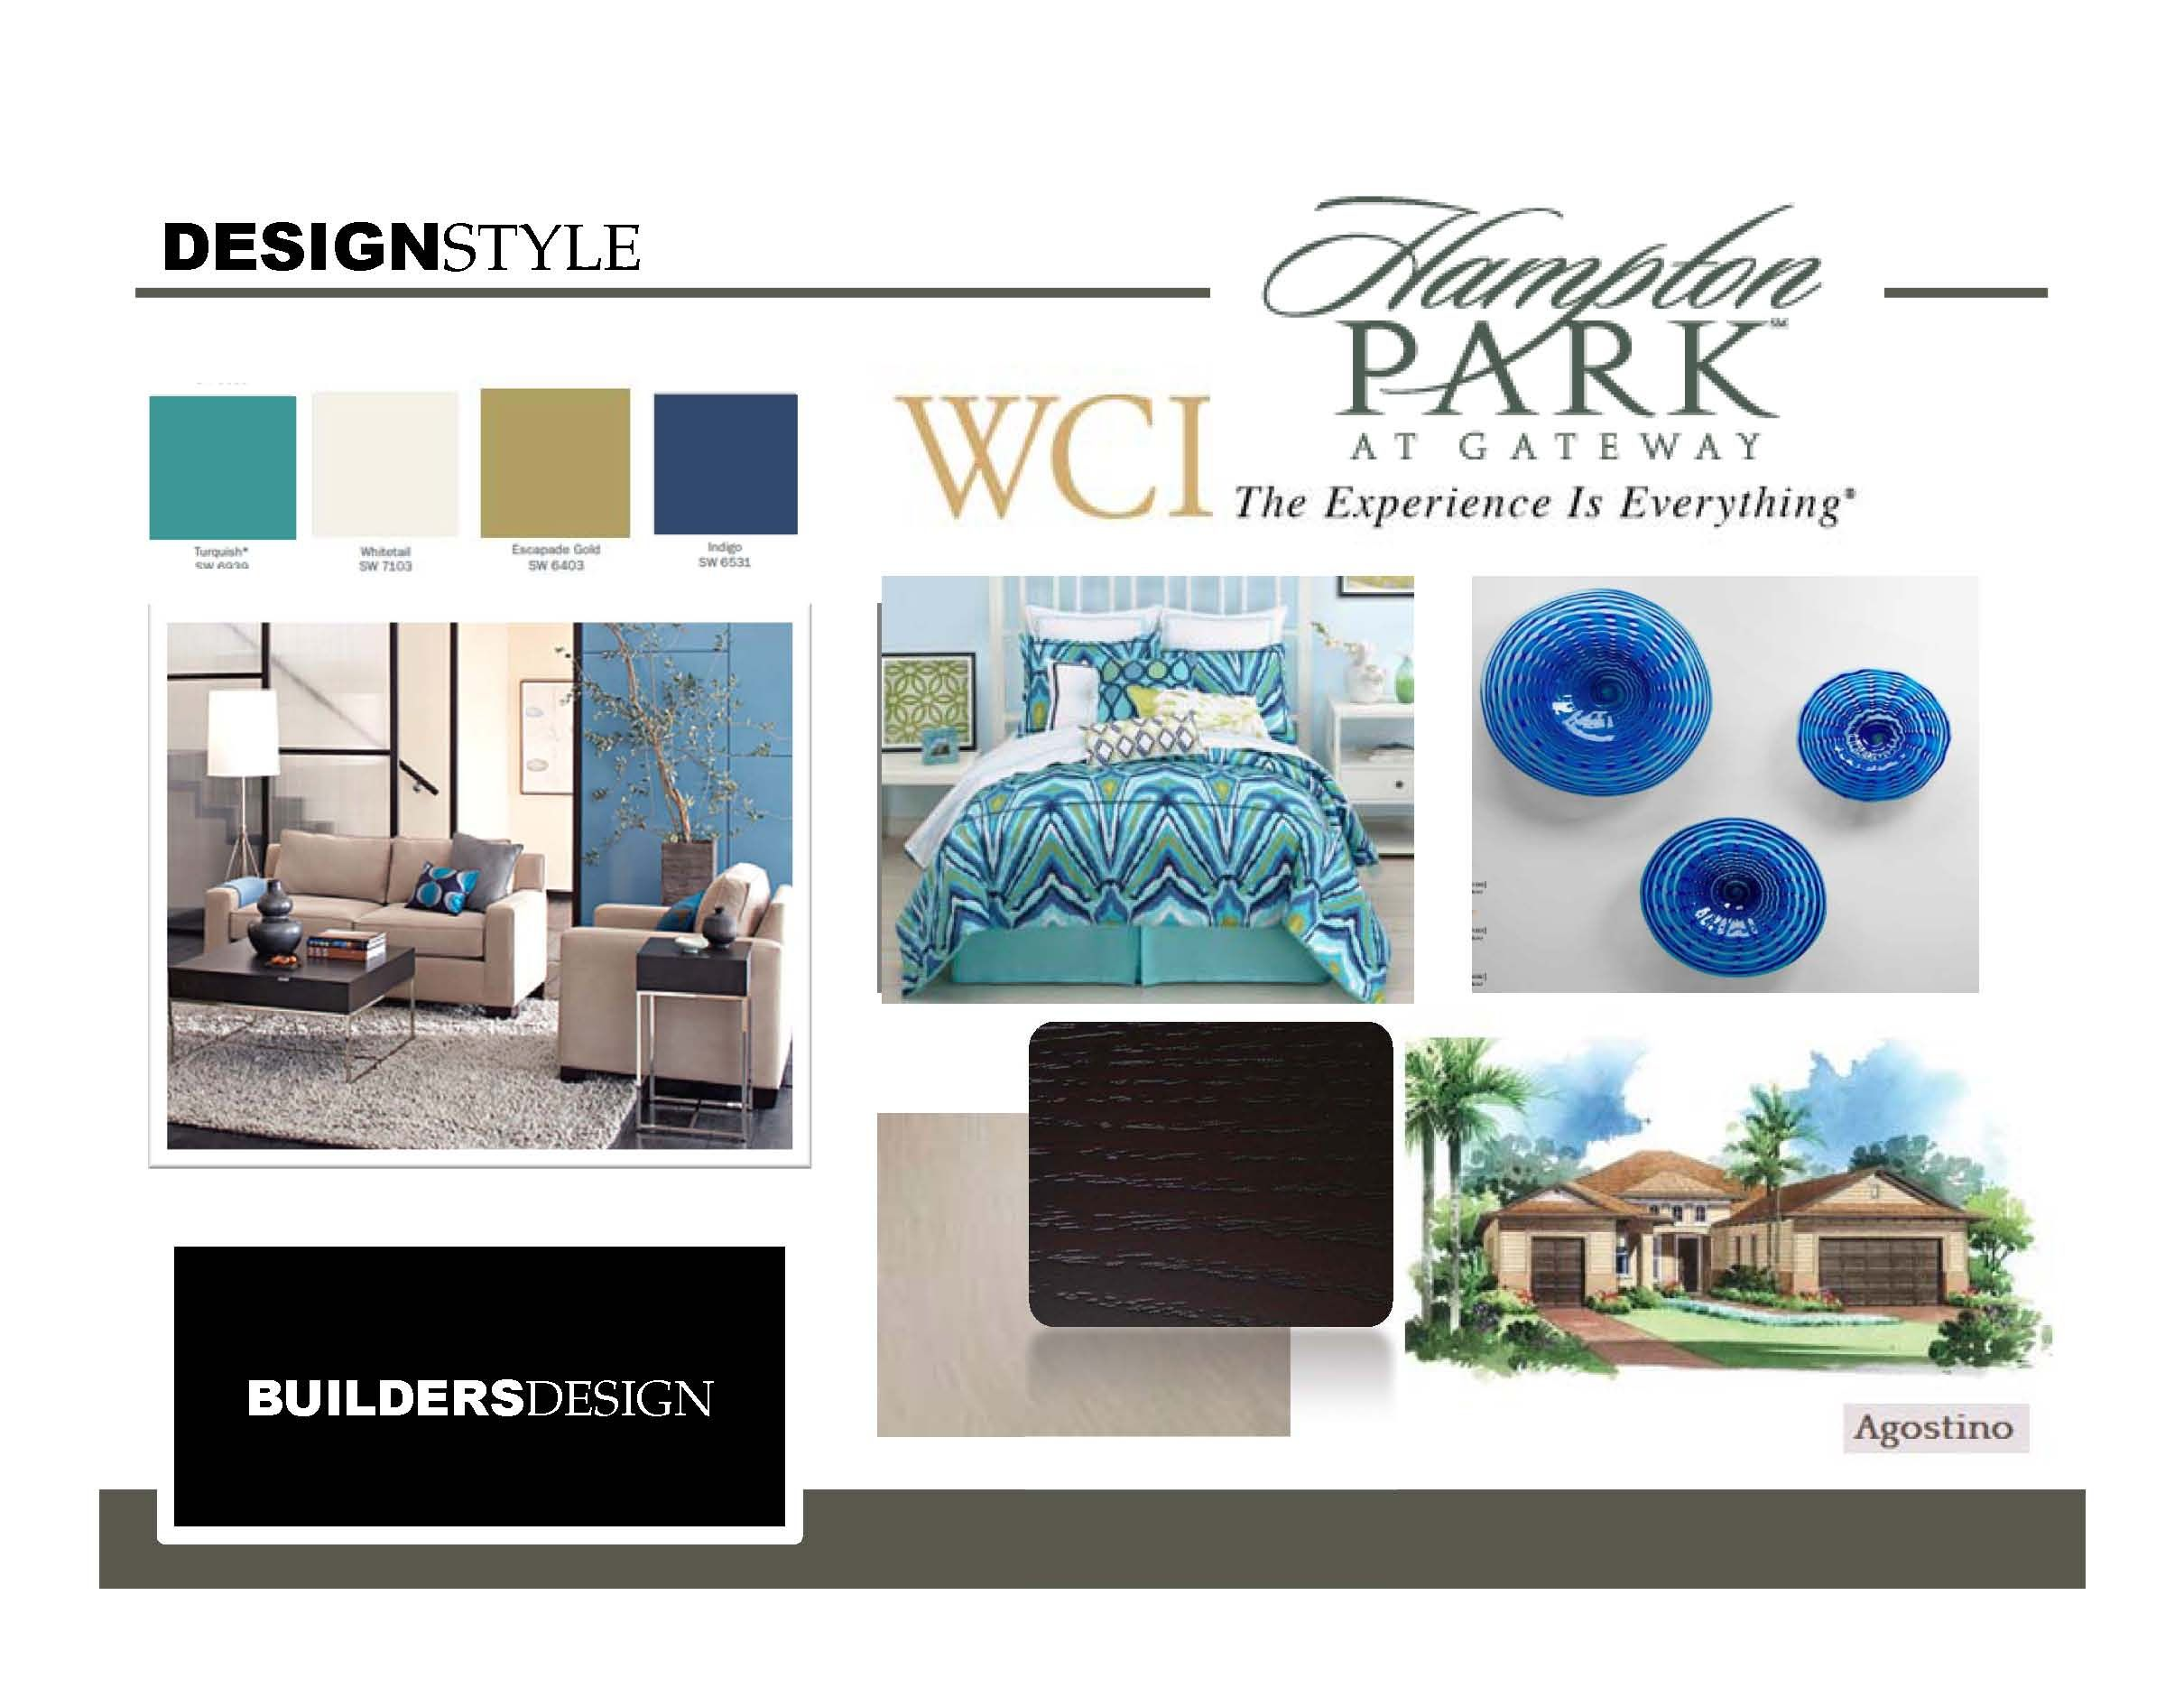 Mood board for the agostino model at wcius hampton park in ft myers